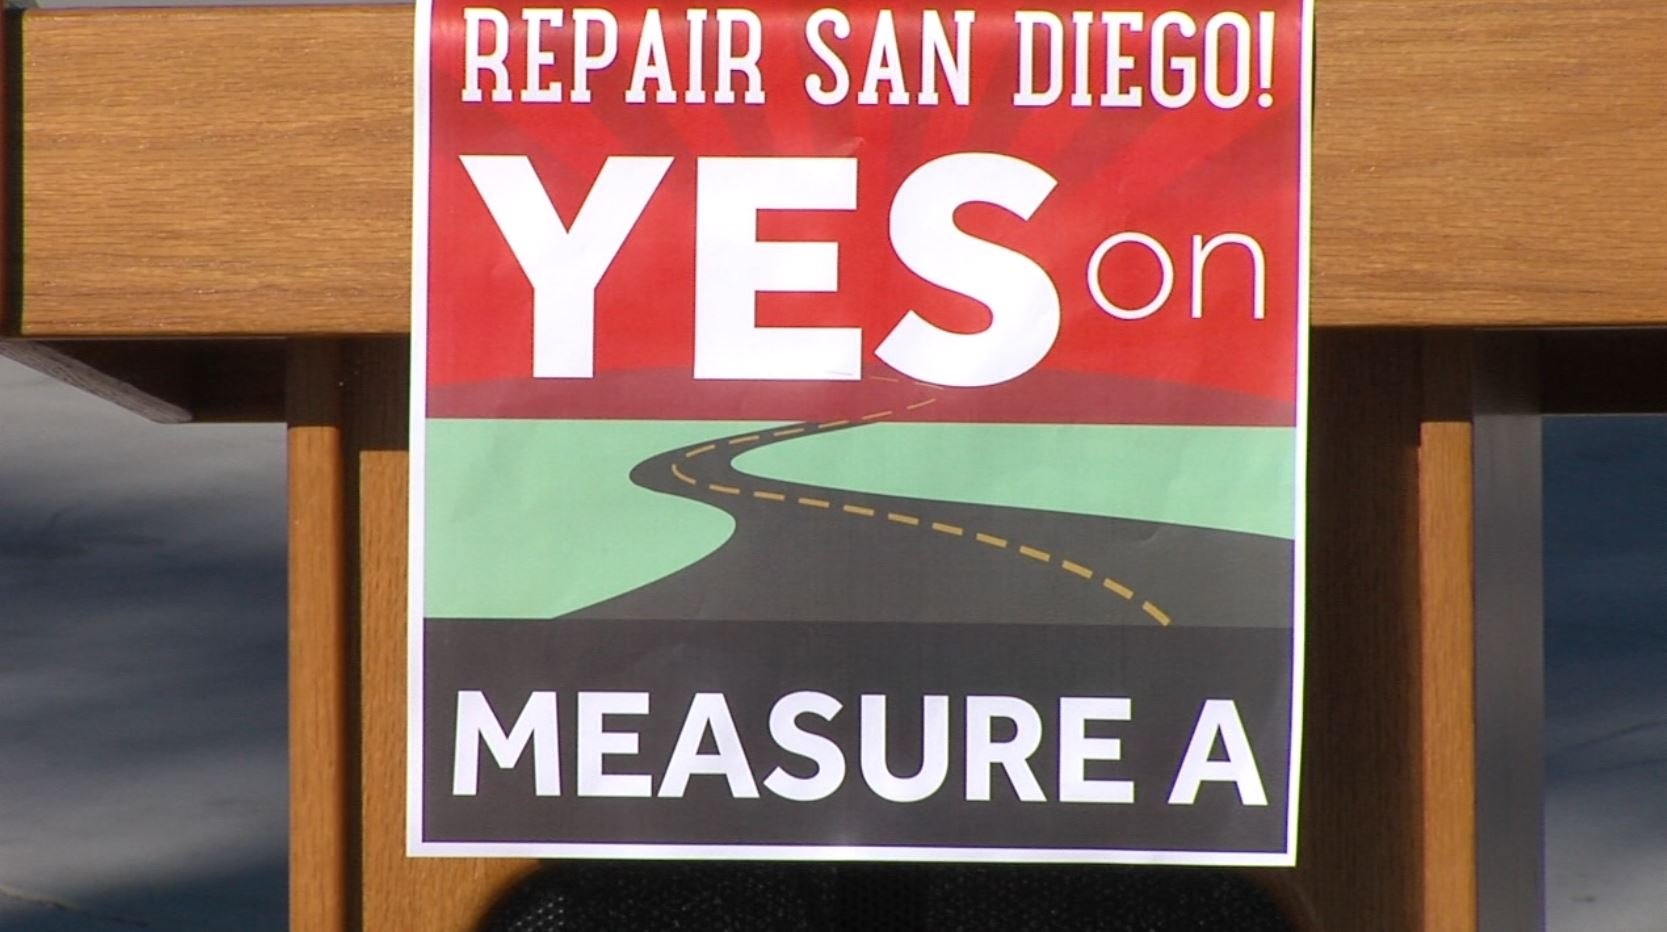 City leaders campaign for passage of Measure A